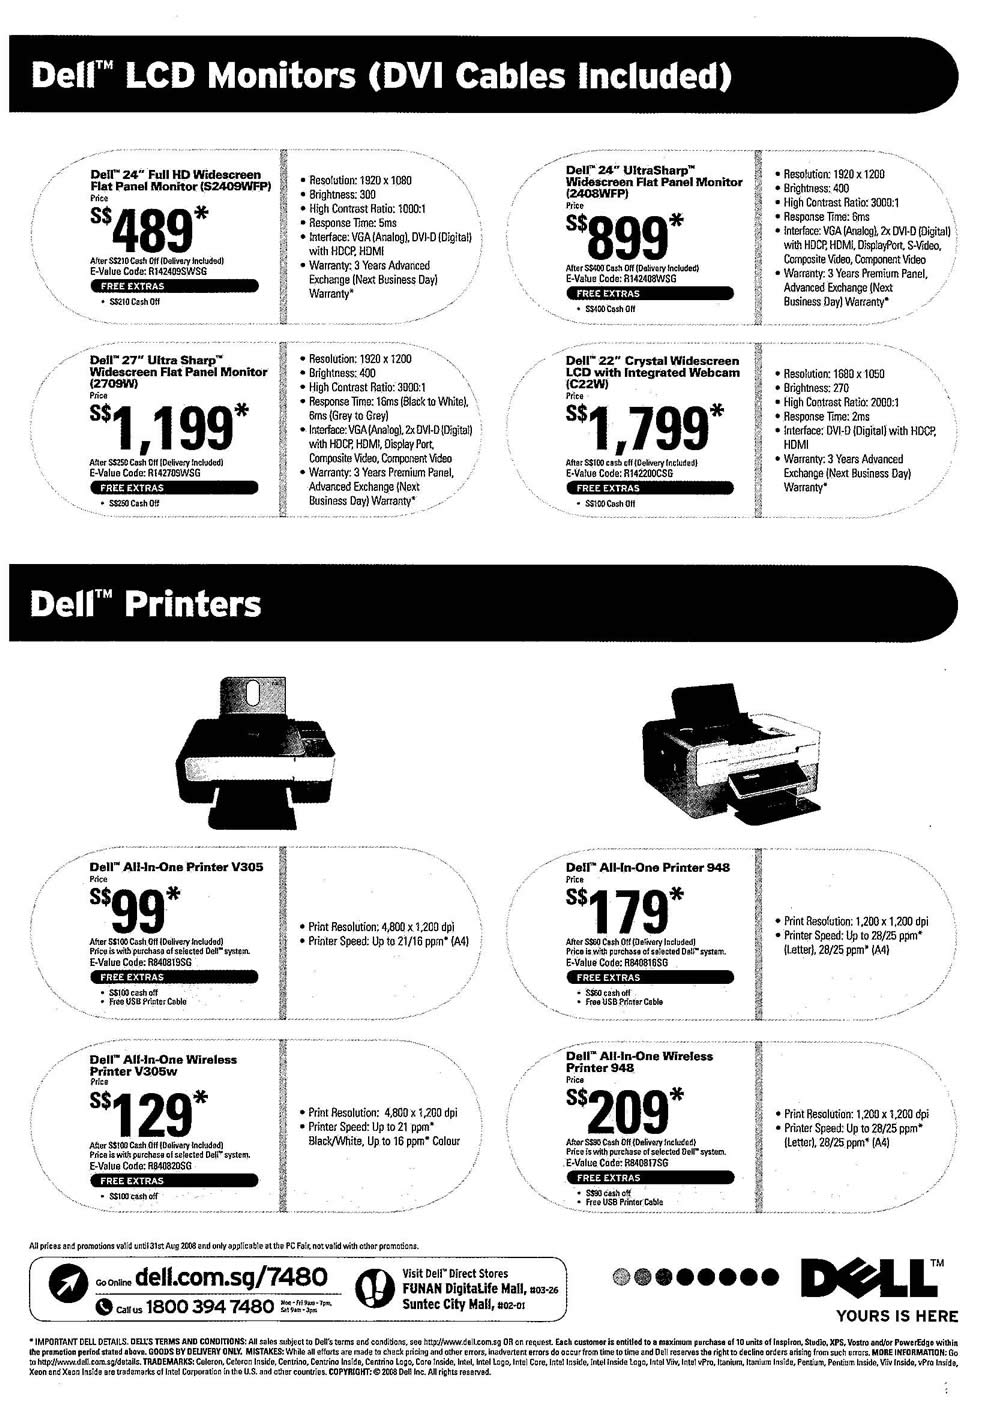 Comex 2008 price list image brochure of Dell LCD Monitor Page 2